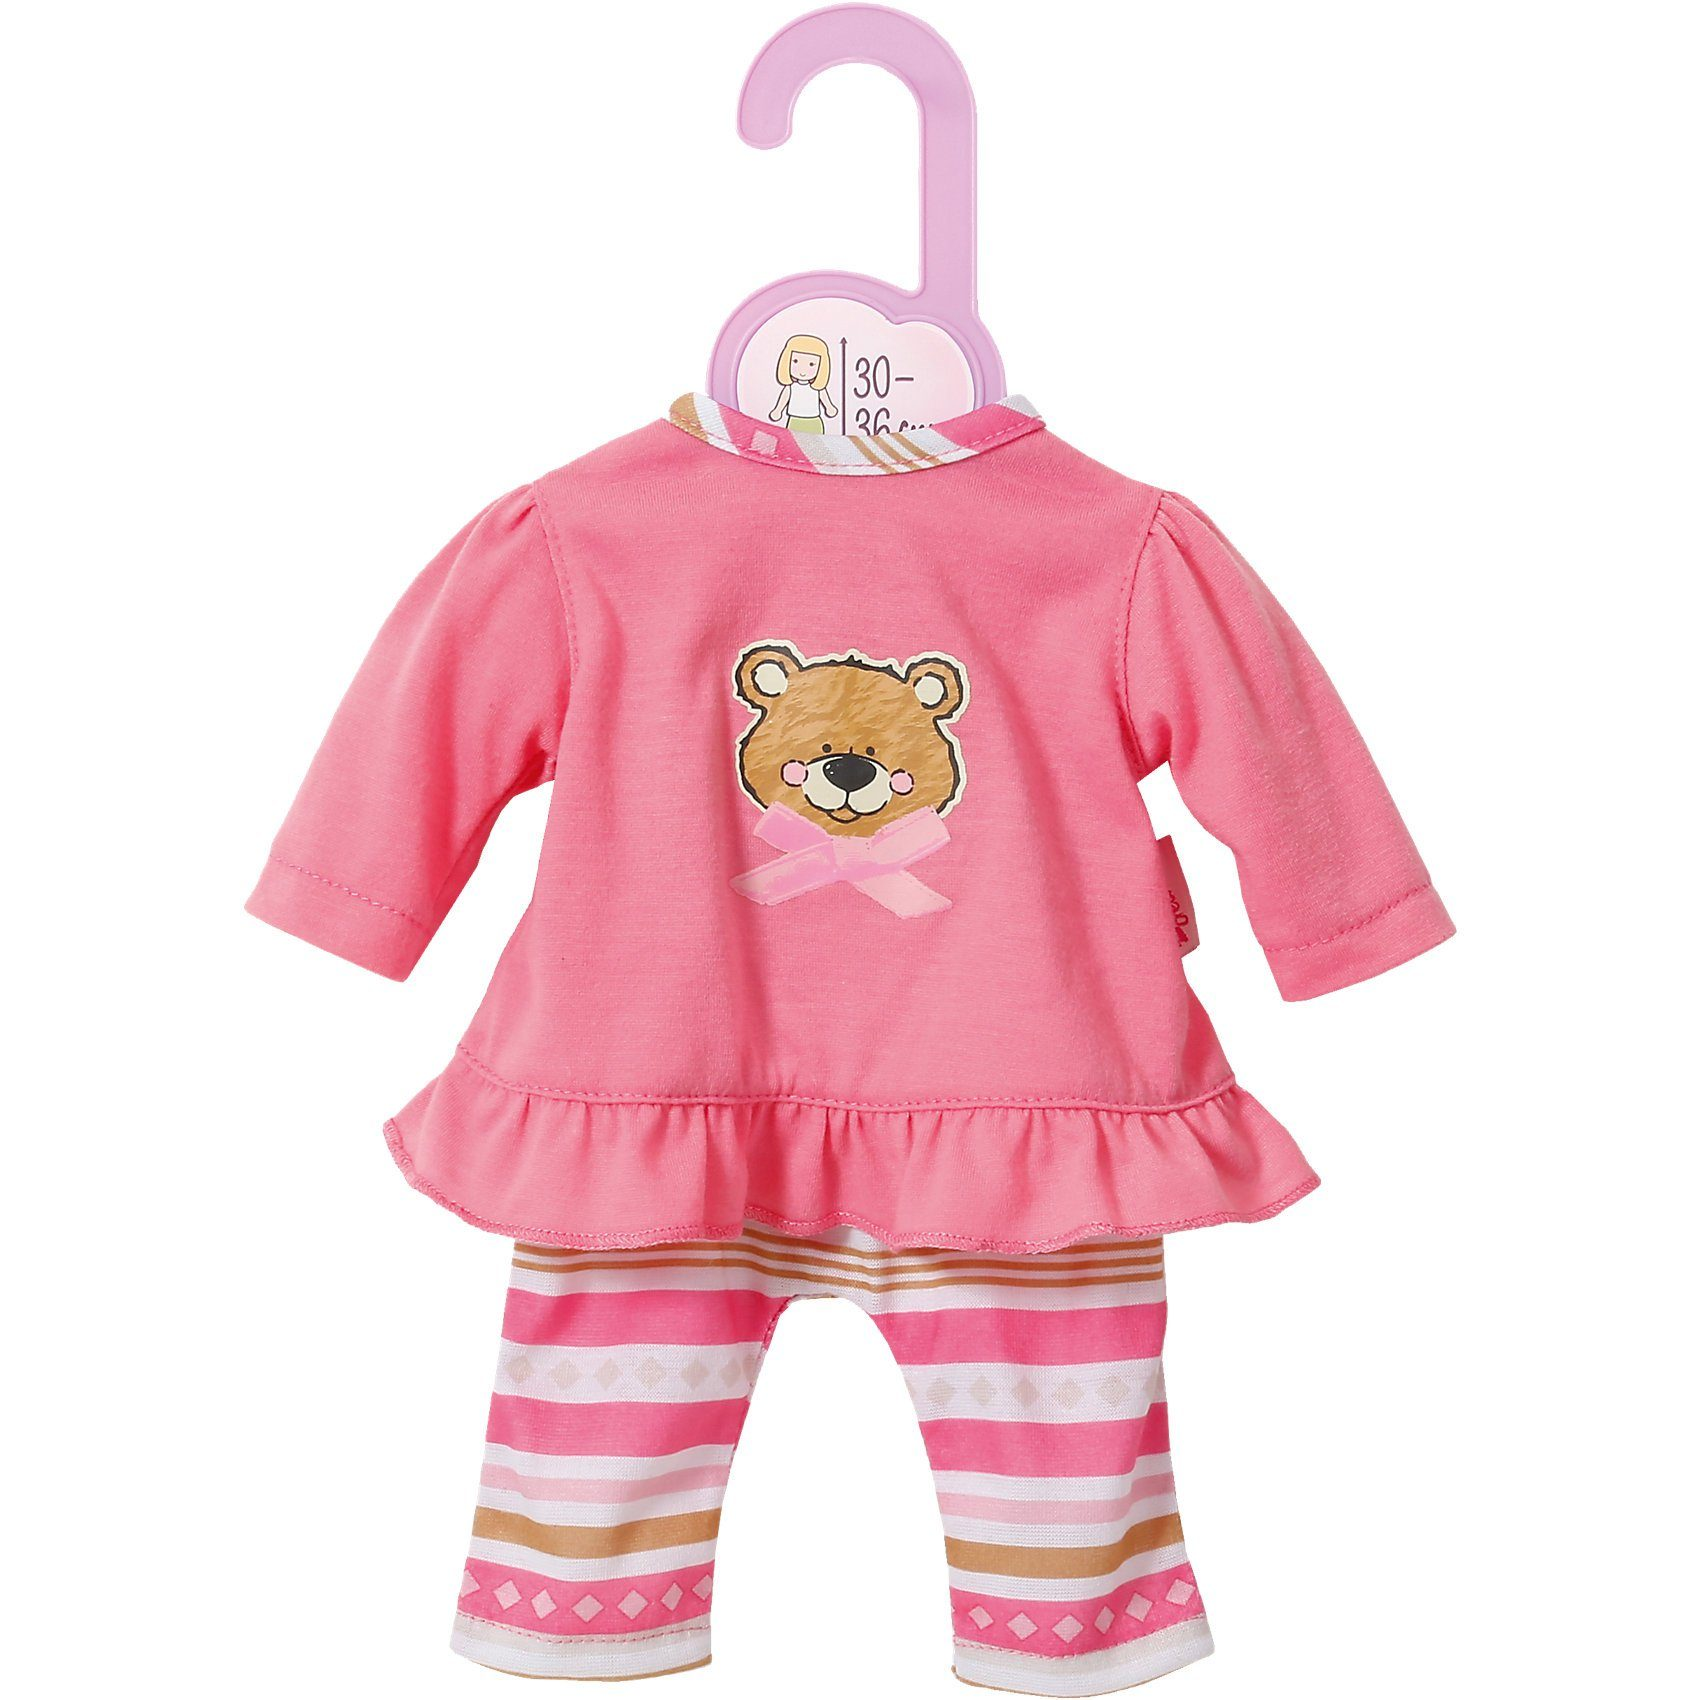 Zapf Creation Dolly Moda Pyjama 30-36 cm